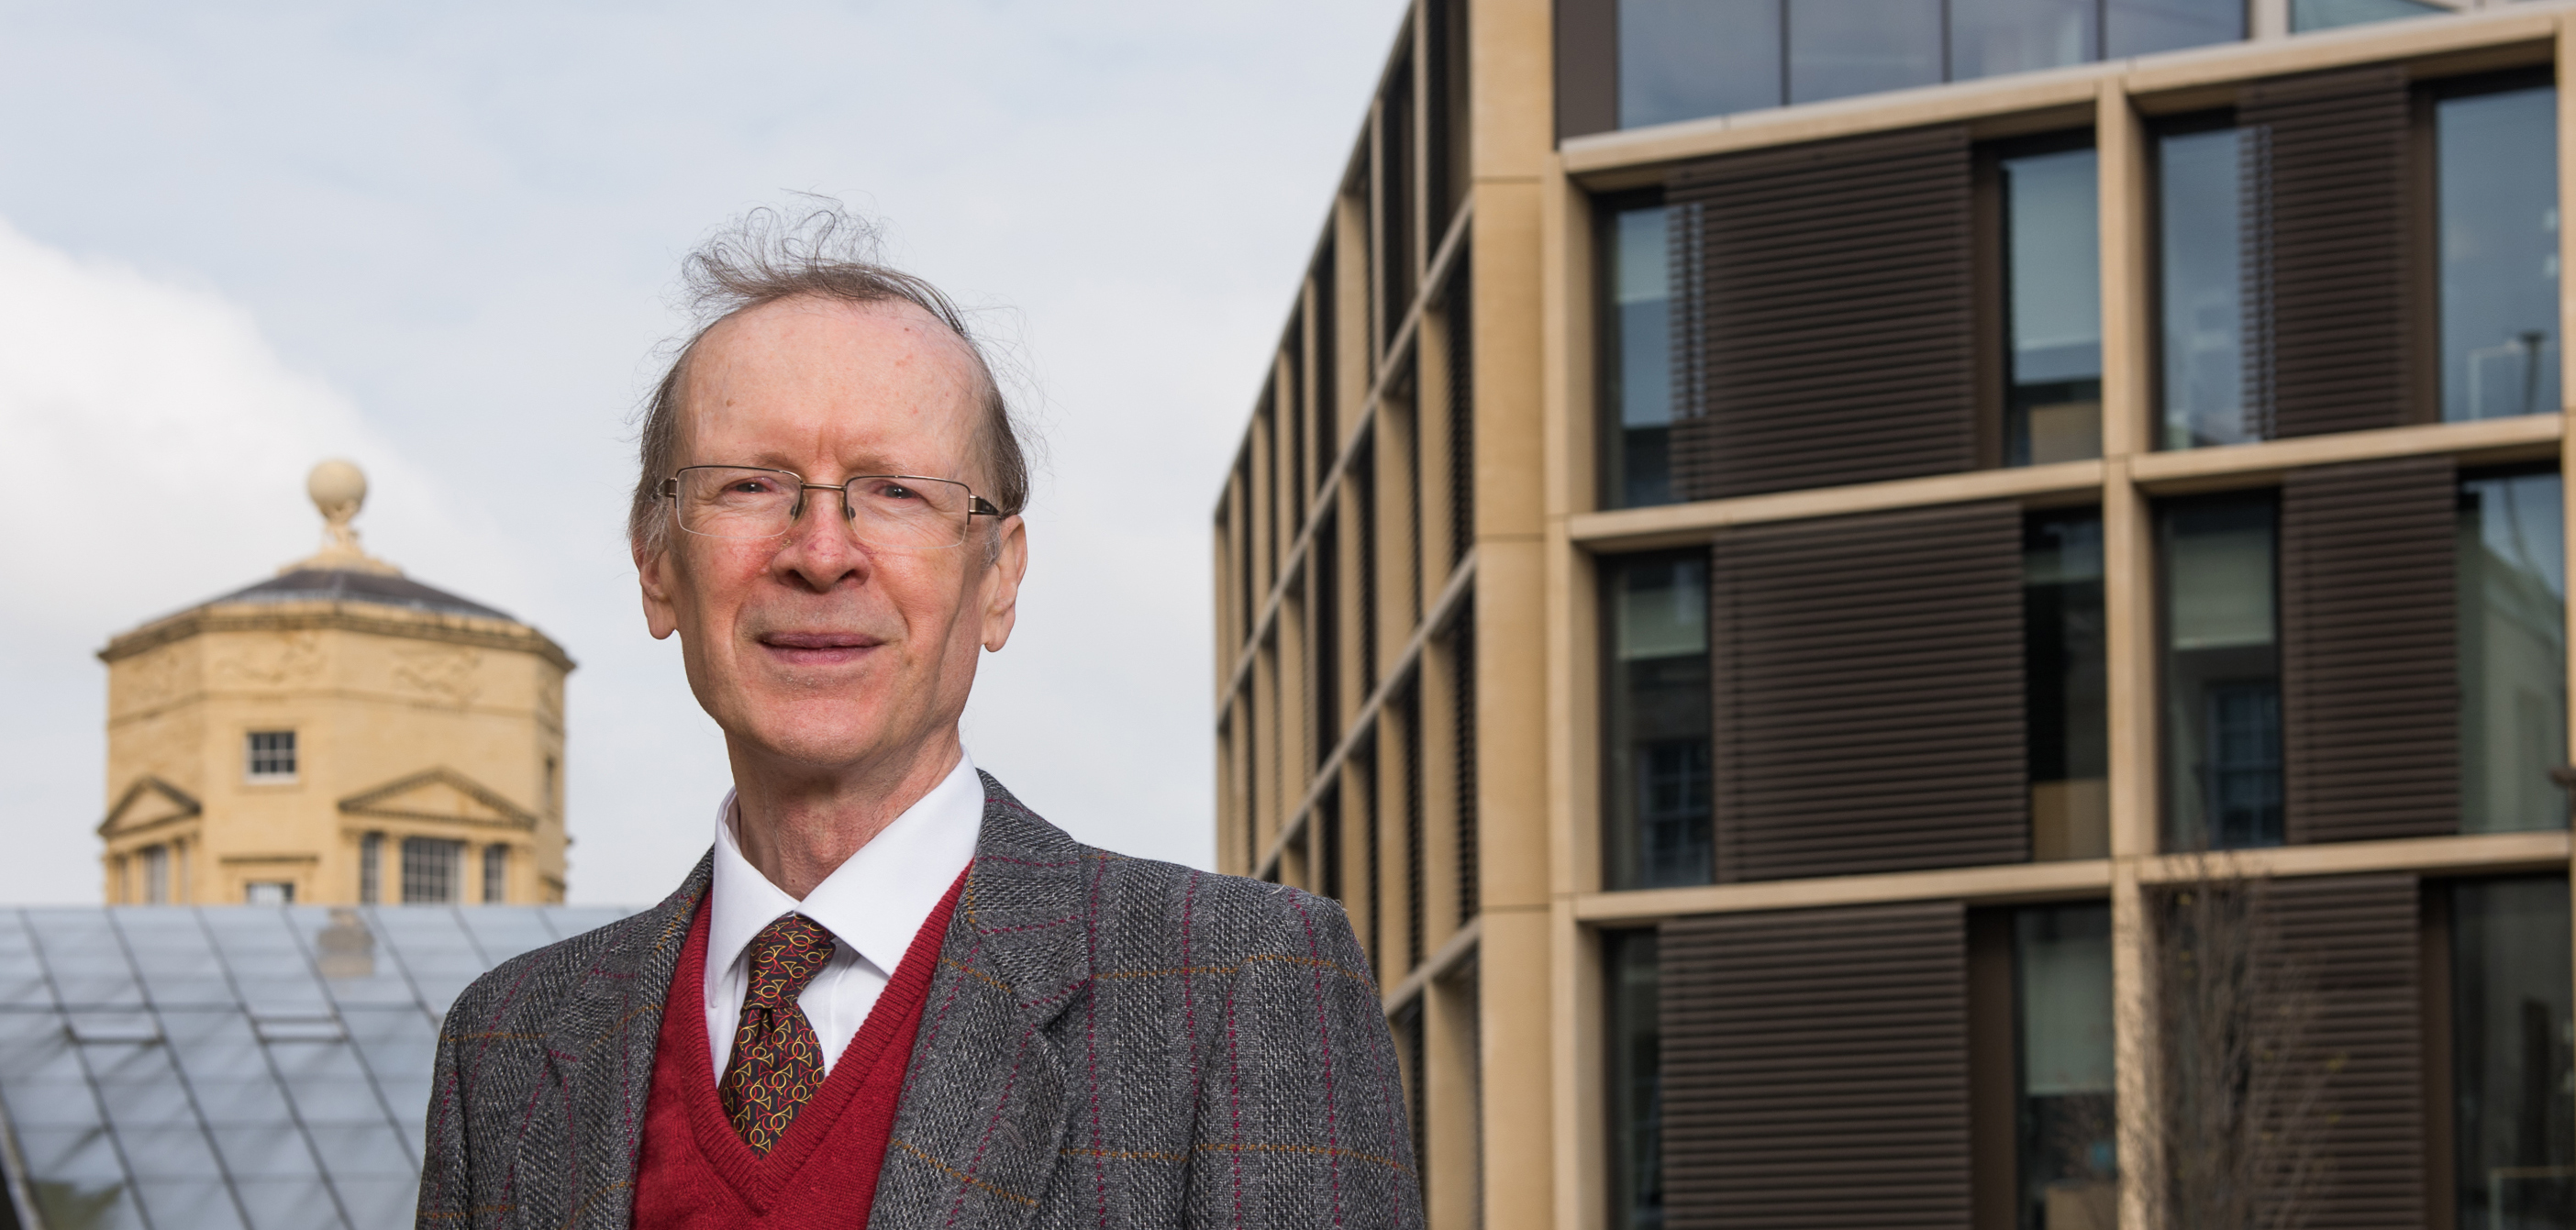 Sir Andrew Wiles awarded Copley Medal by Royal Society